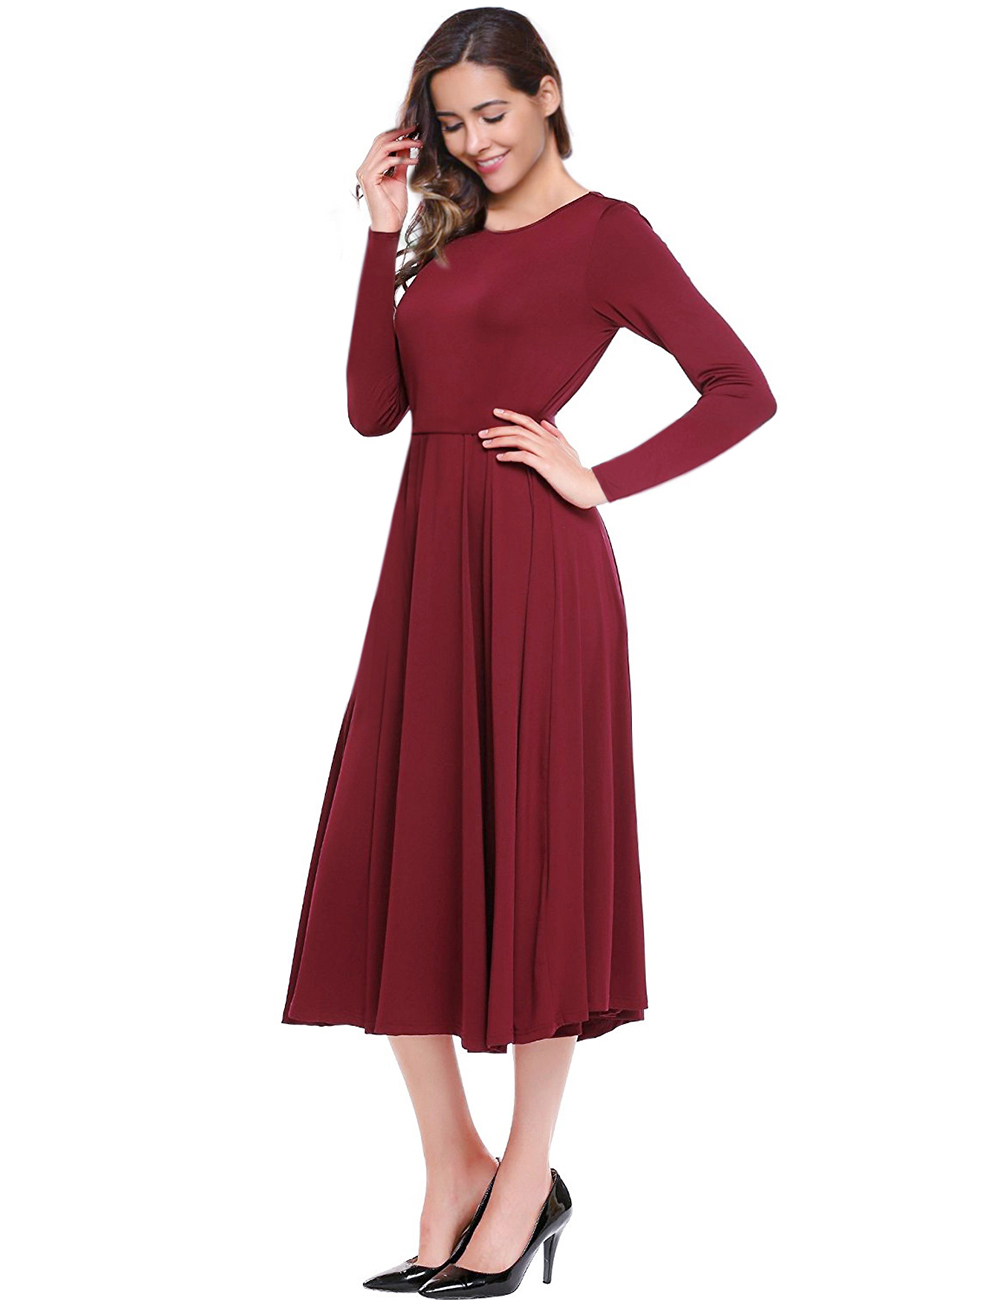 Leadingstar Women's Casual A-Line Midi Dress